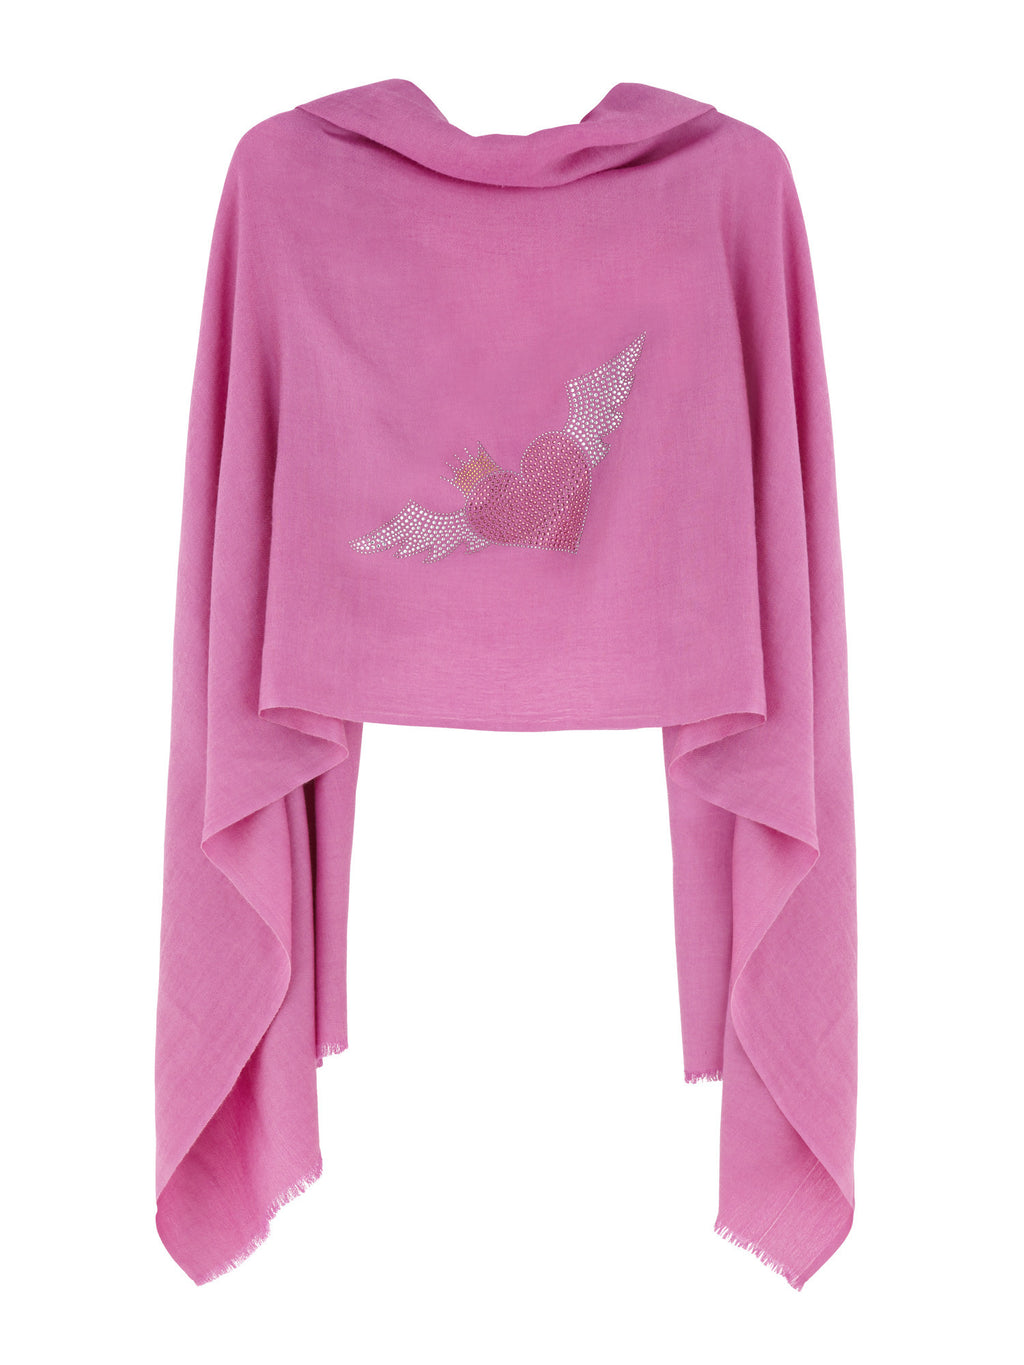 Crystal embellished cashmere pashmina shawl, pink with heart, crown and wings